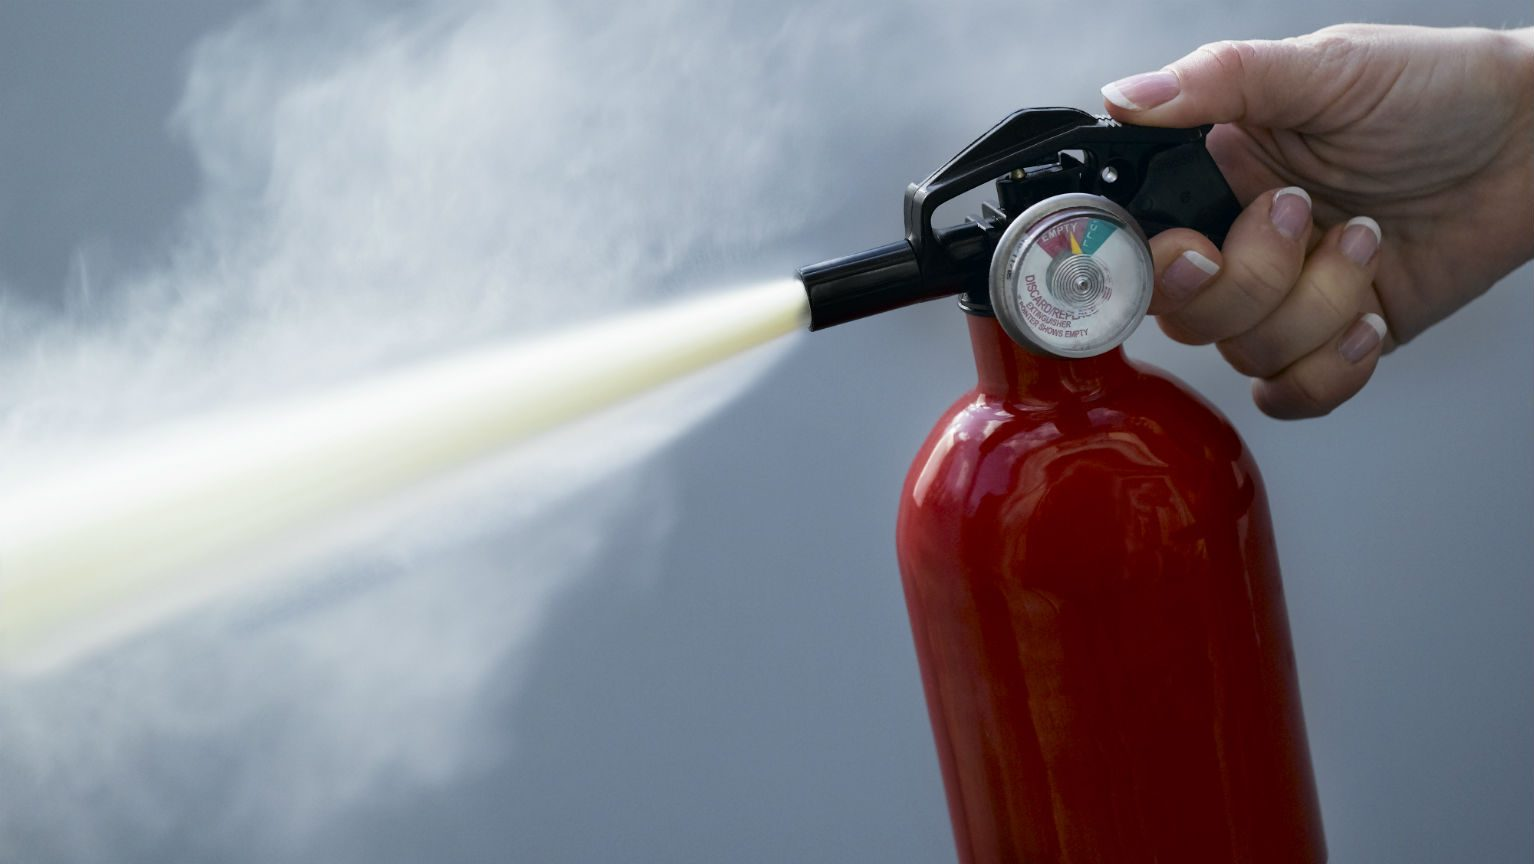 Woman spraying fire extinguisher